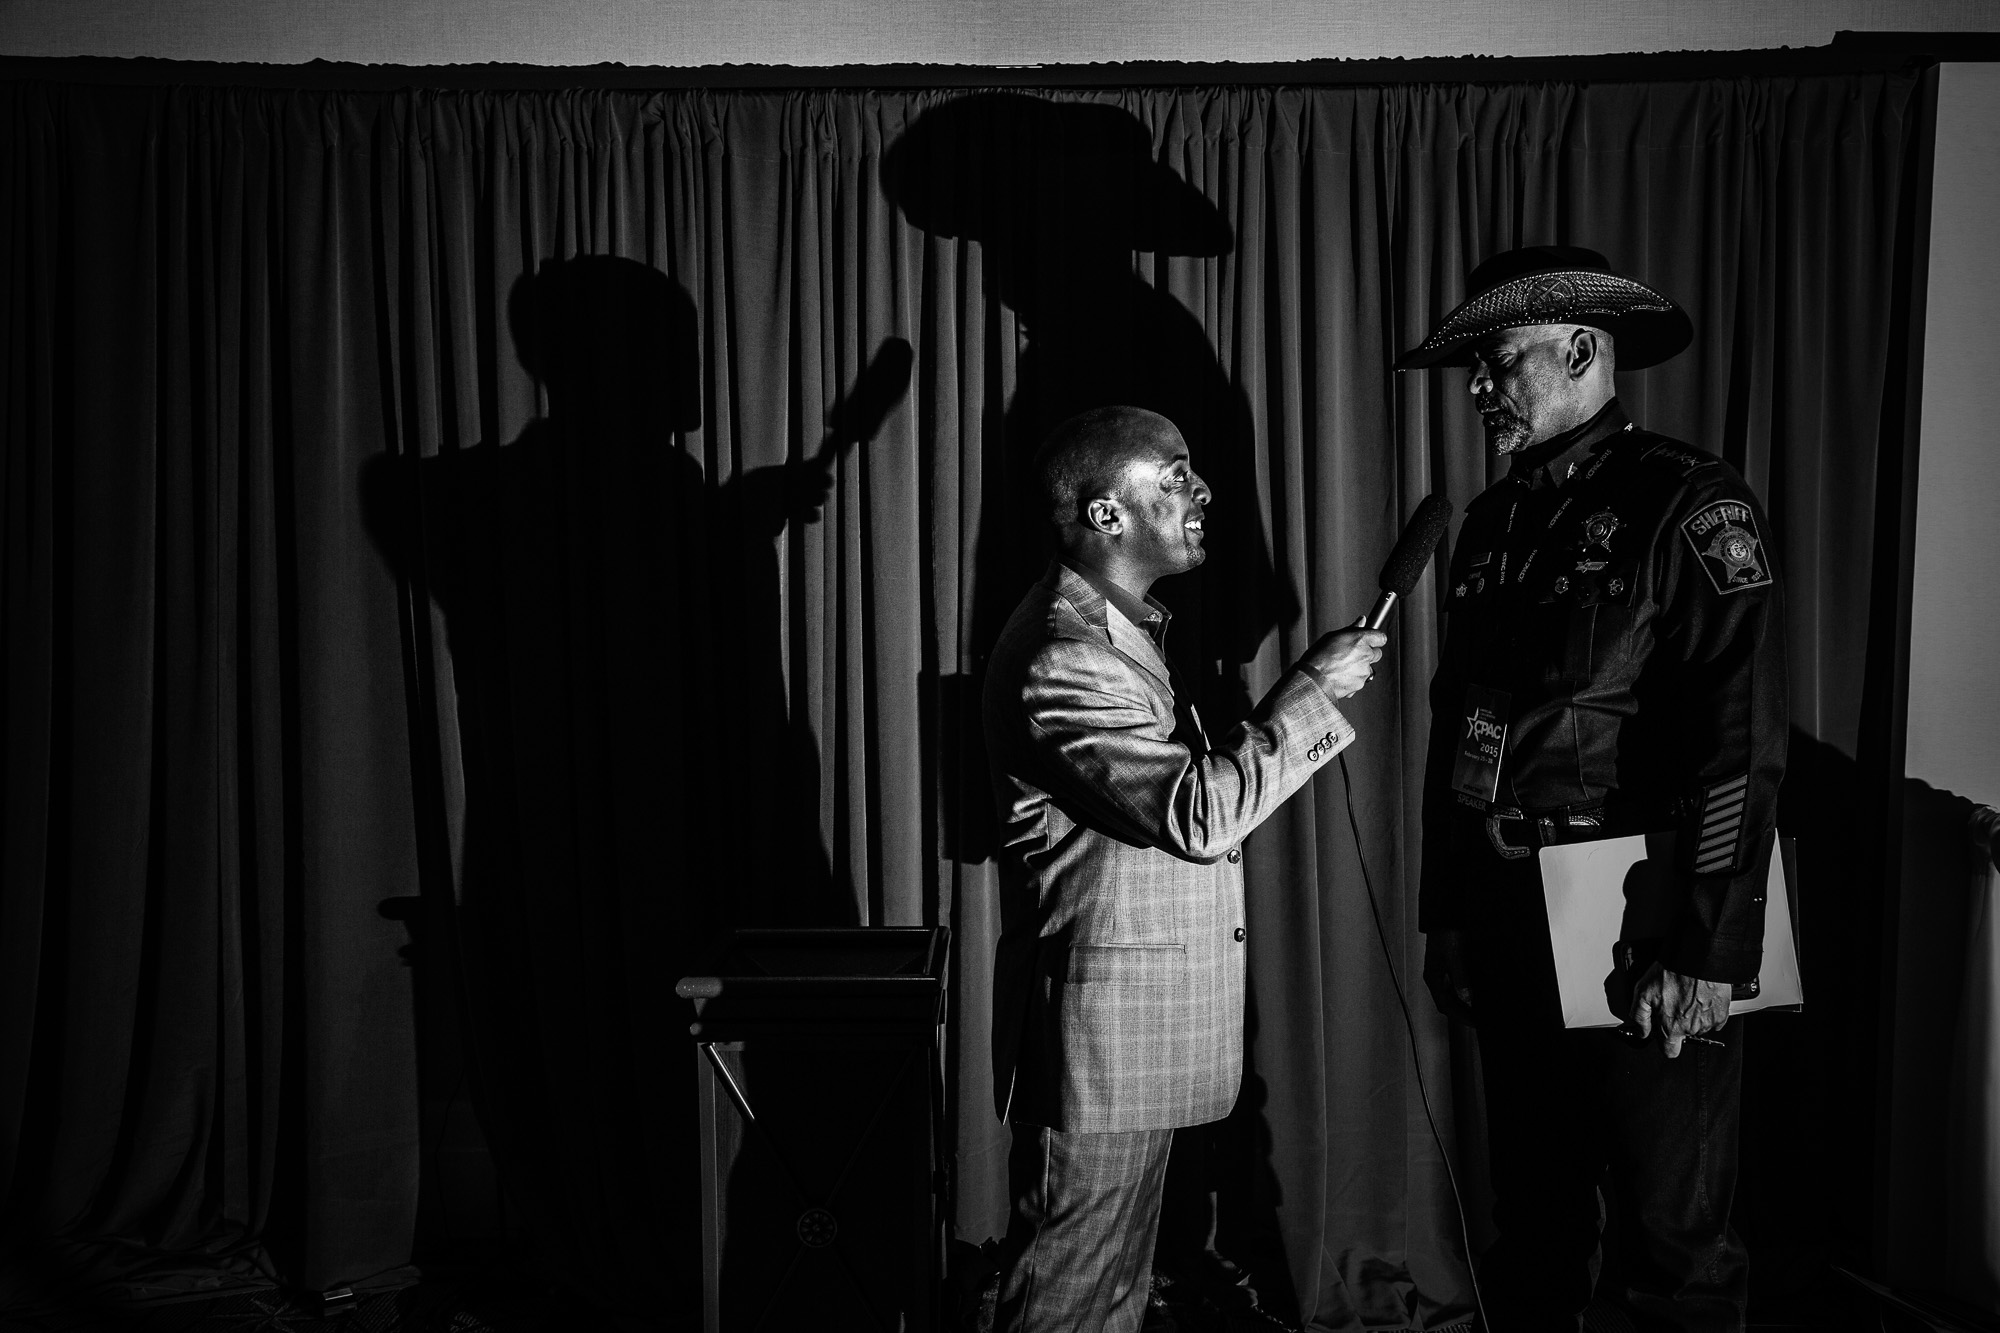 Sen. Rand Paul won the Conservative Political Action Conference straw poll for the third year in a row on Saturday, with 25.7% of the vote, event organizers announced Saturday at the National Harbor, Maryland, Confab. But the biggest winner of the straw poll was perhaps Wisconsin Gov. Scott Walker, who catapulted from fifth last year to second place this year and came in just four points behind Paul, with 21.4% support. He delivered one of the conference's best-received speeches, laying out his vision for the economy and drawing enthusiastic applause that overshadowed a tone-deaf answer he gave on foreign policy. The closely watched survey of conference attendees represents a small but vocal faction of the Republican party, and the voters tend to be younger and libertarian leaning as many college students attend the gathering. Paul won in 2014 and 2013, and his father, a libertarian icon and former Texas congressman Ron Paul won in 2010 and 2011. 2012 Republican presidential nominee Mitt Romney won that year.